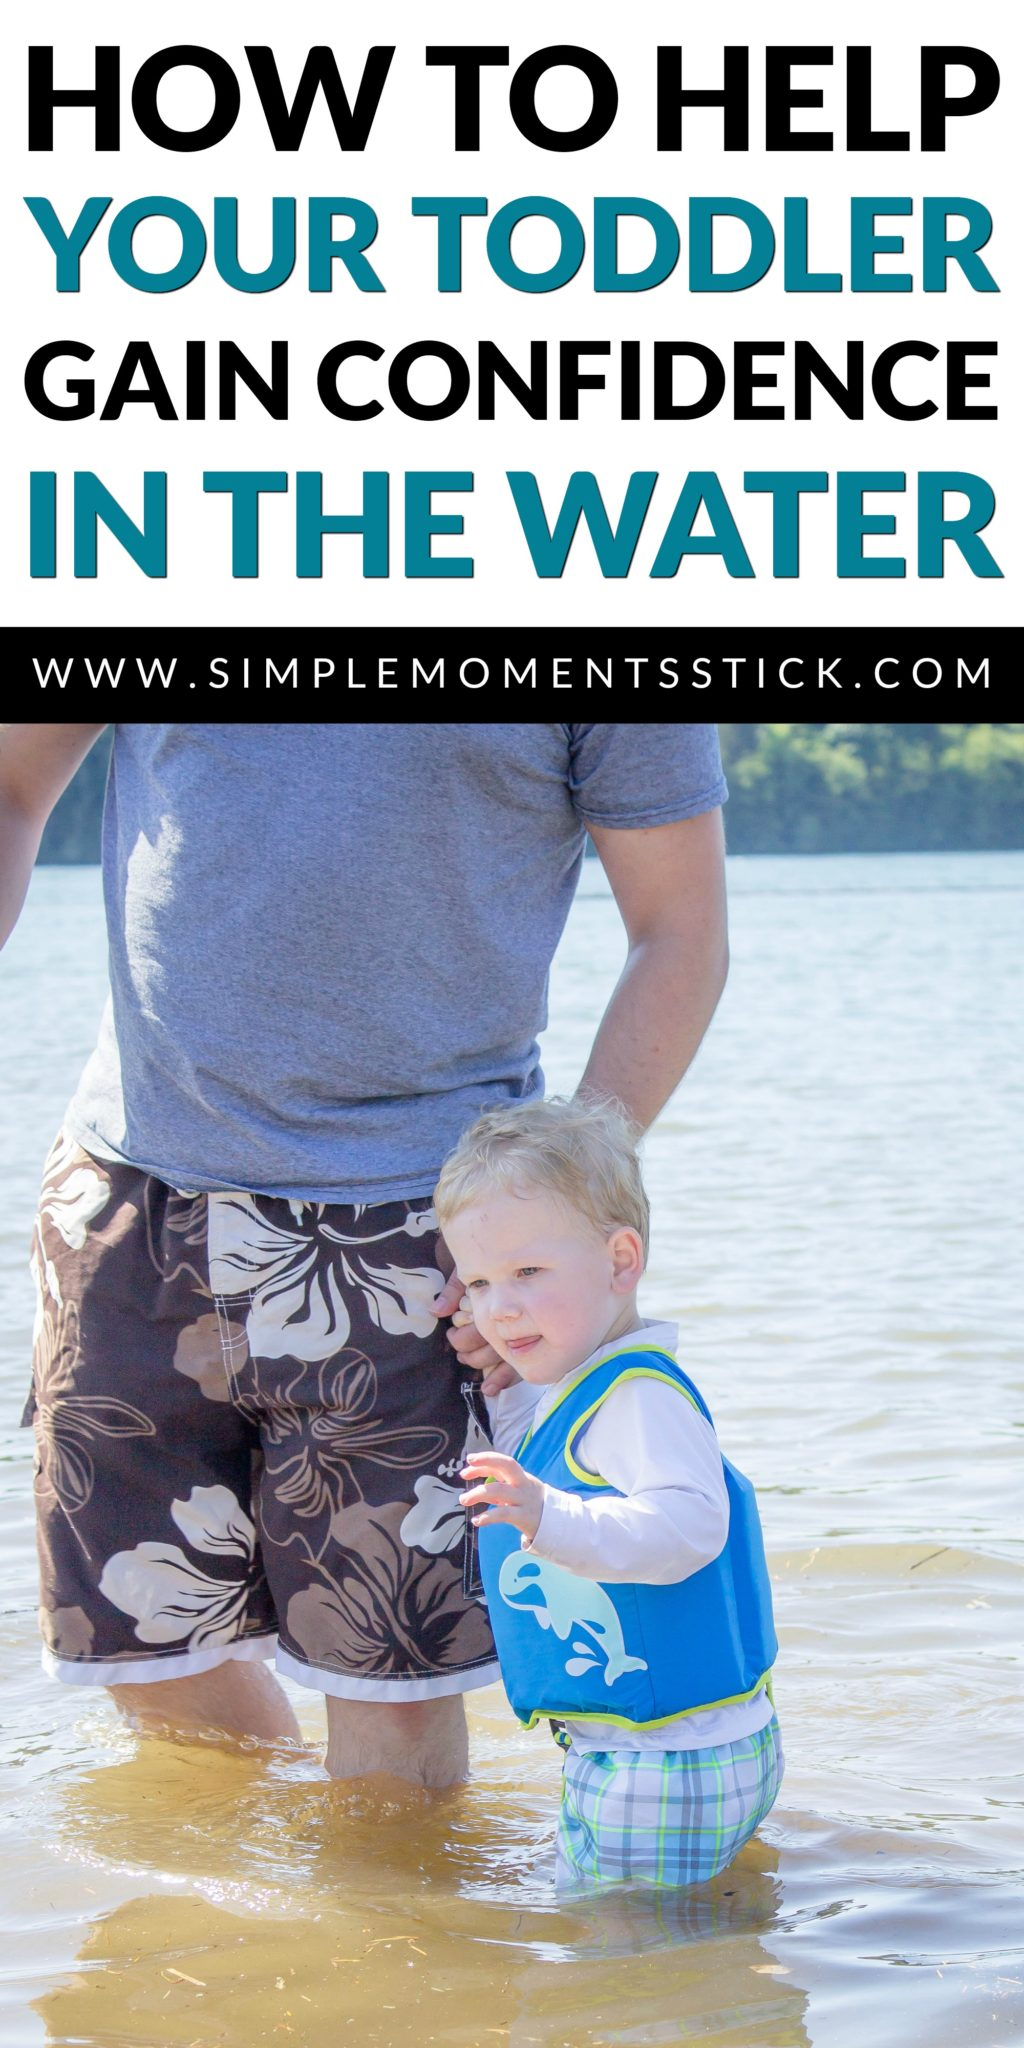 Toddler boy wearing SwimWays vest in water, holding dad's hand with text - How to Help Your Toddler Gain Confidence in the Water